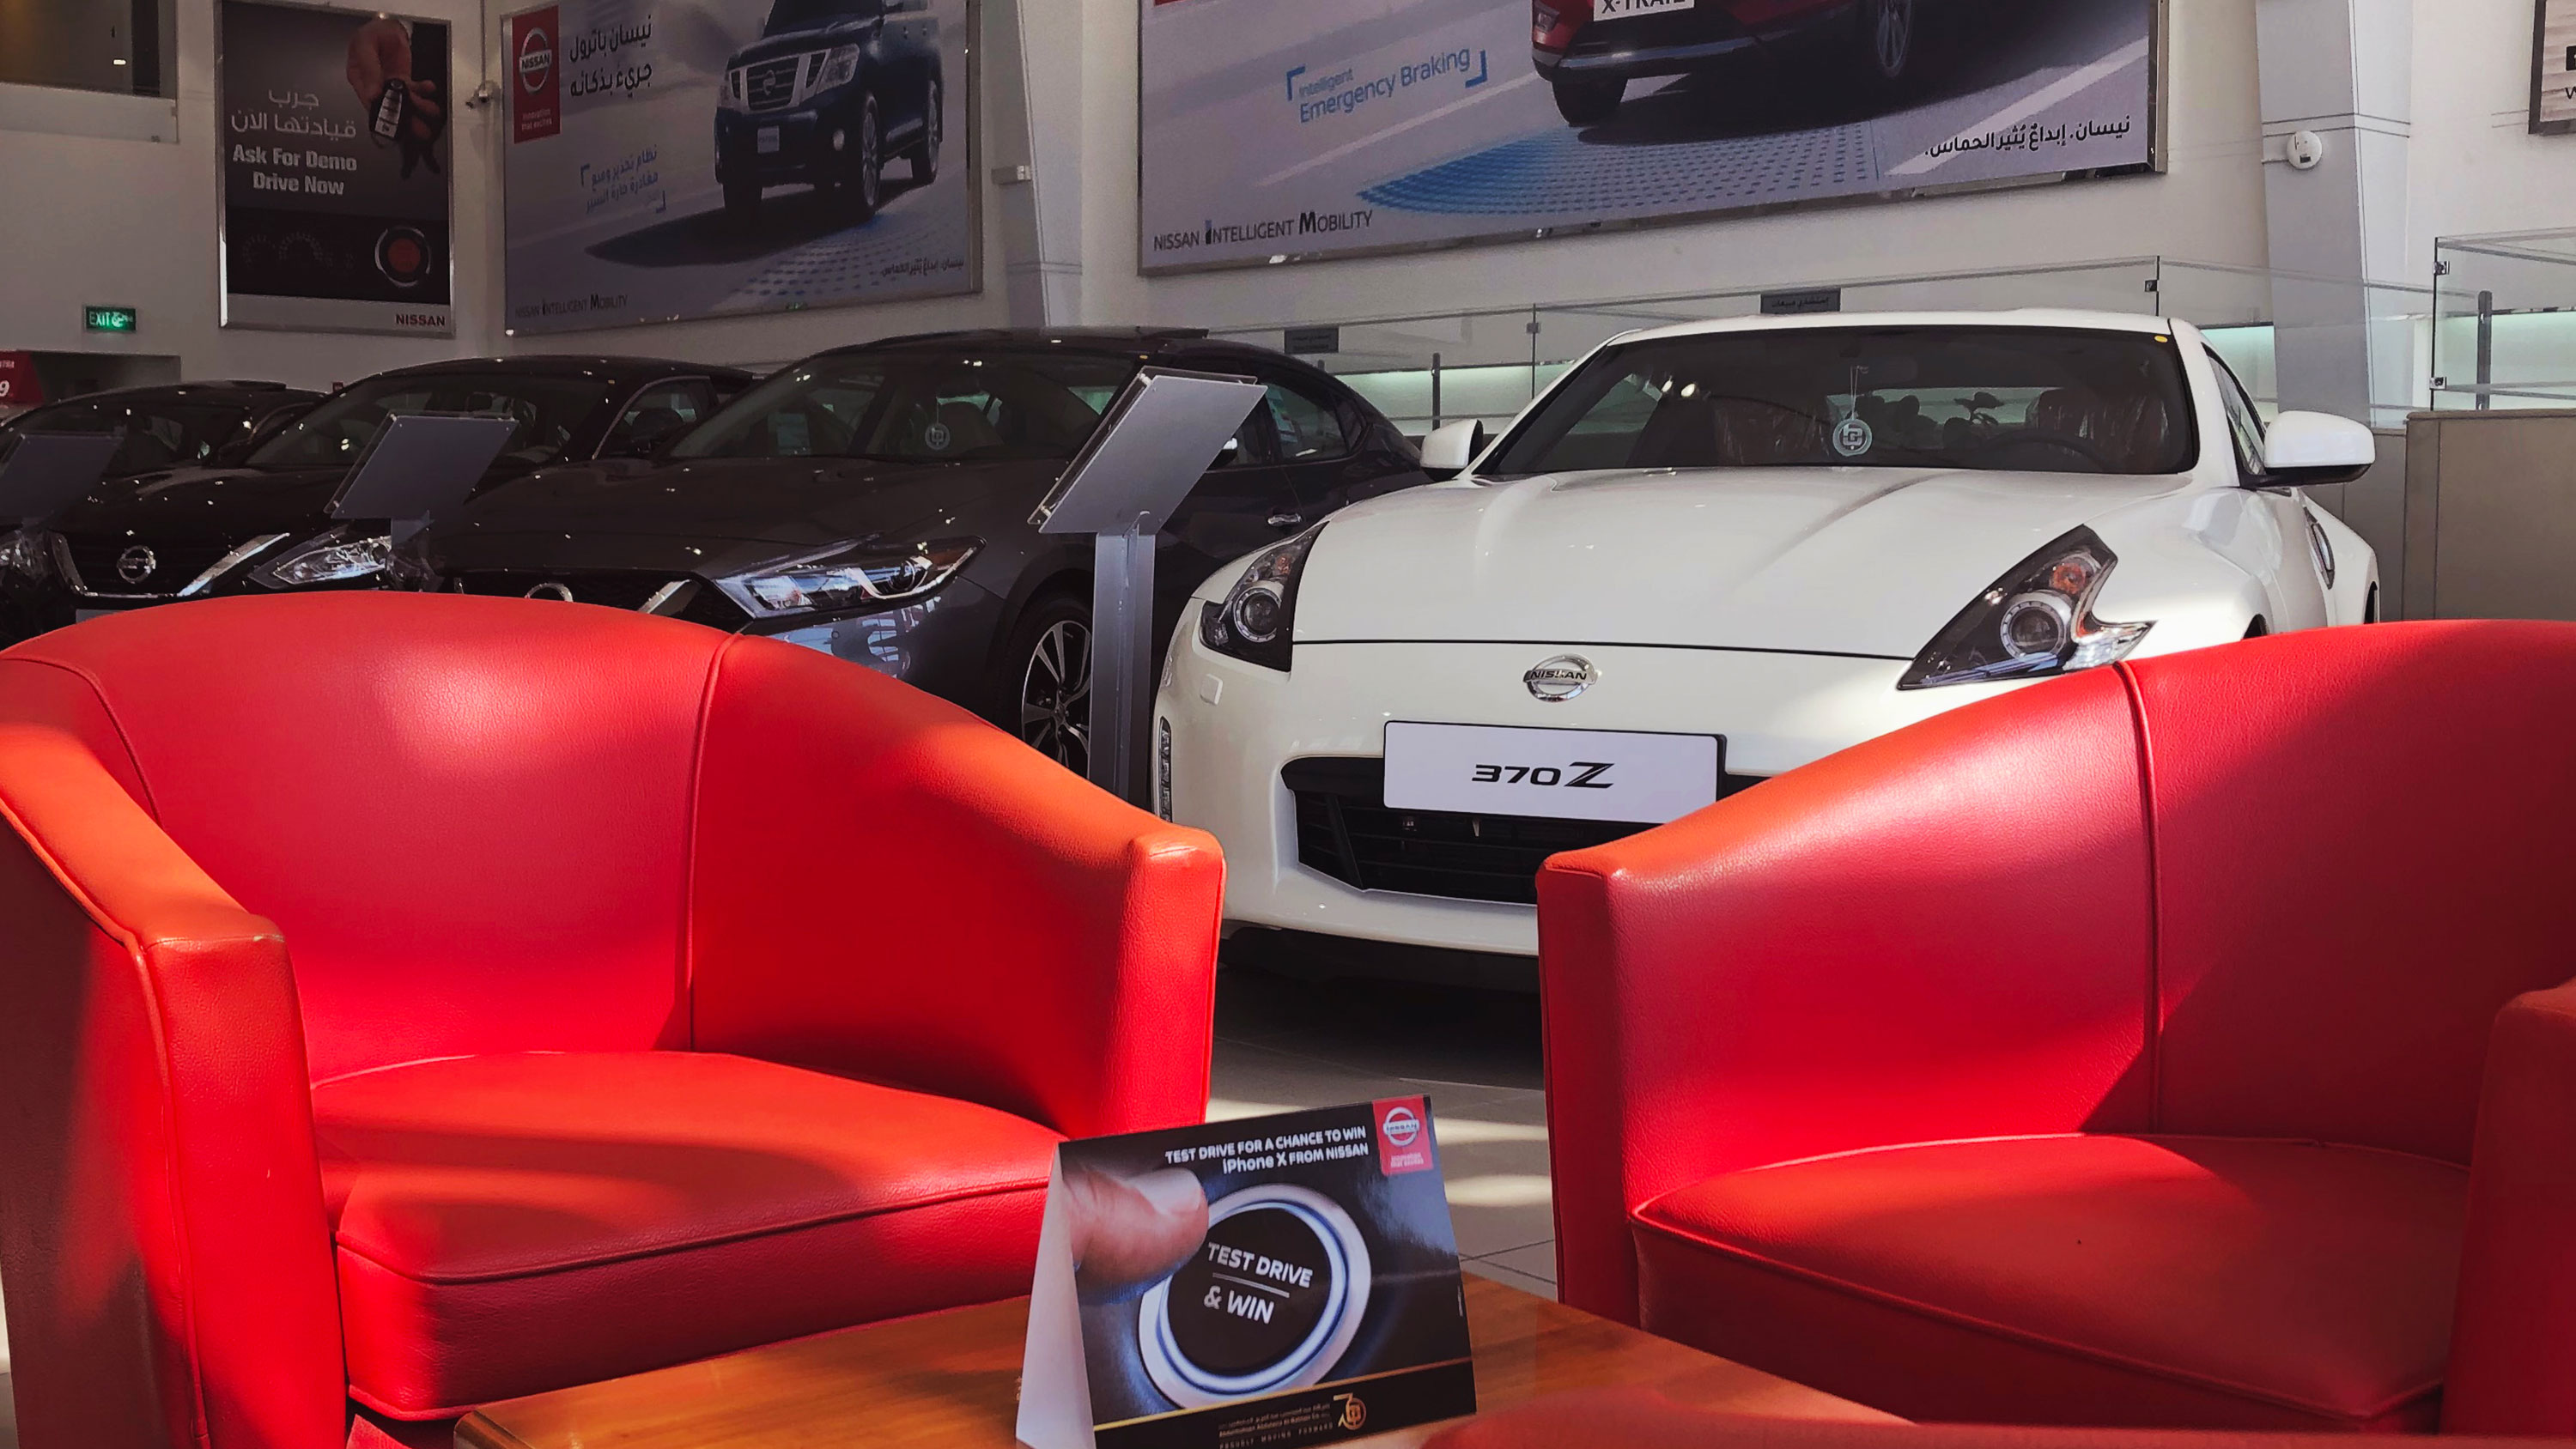 Nissan Showroom Couch